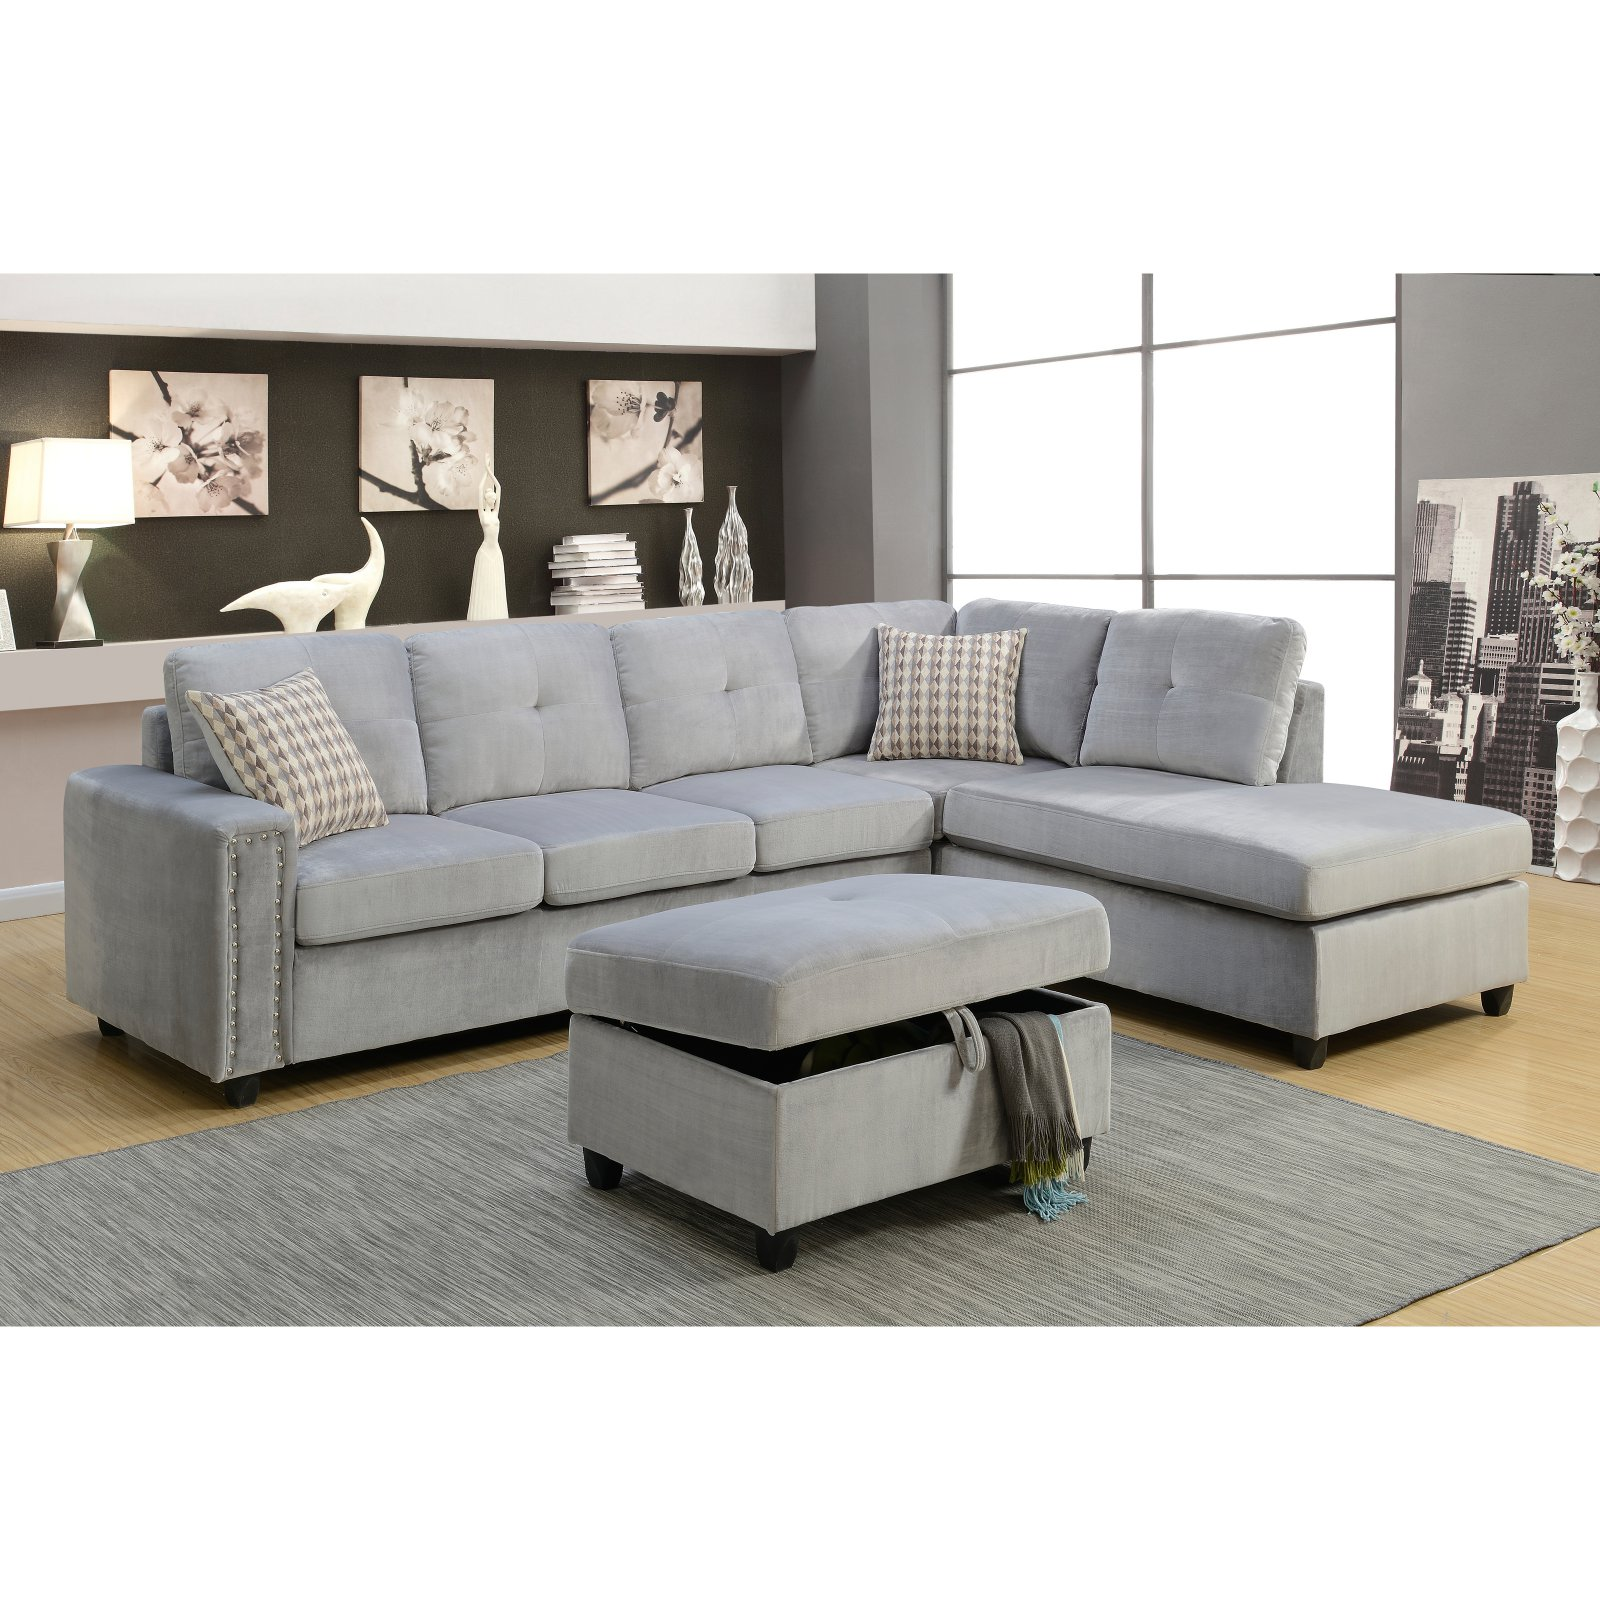 ACME Belville Reversible Sectional Sofa with 2 Pillows, Chocolate Velvet by Acme Furniture